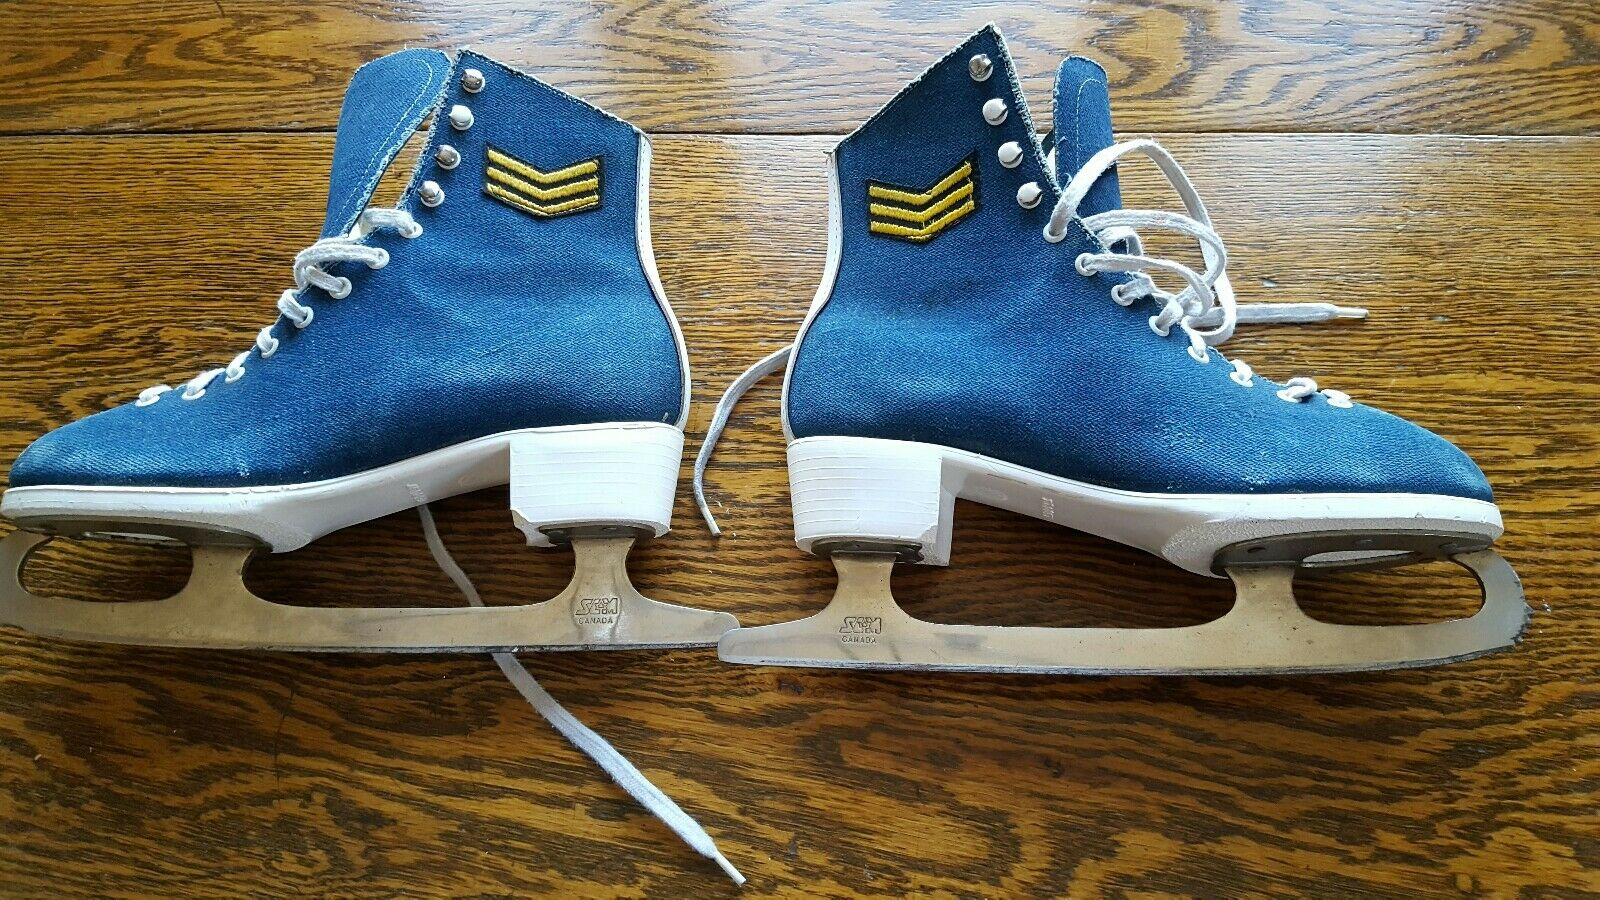 Vintage bluee Trim  Ice S s 7 size woman's retro winter decor military  fast delivery and free shipping on all orders